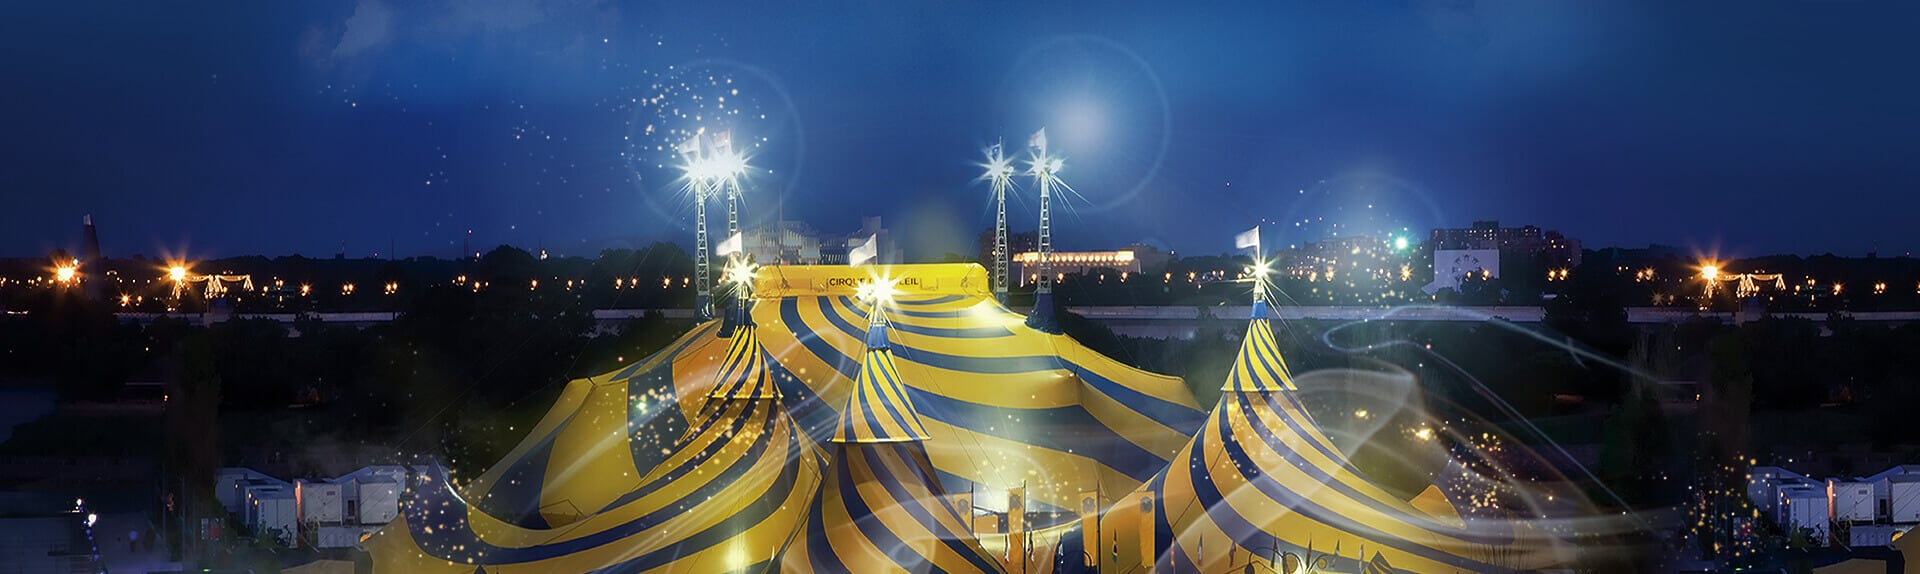 Discover how the Cirque du Soleil blue and yellow big top goes up!